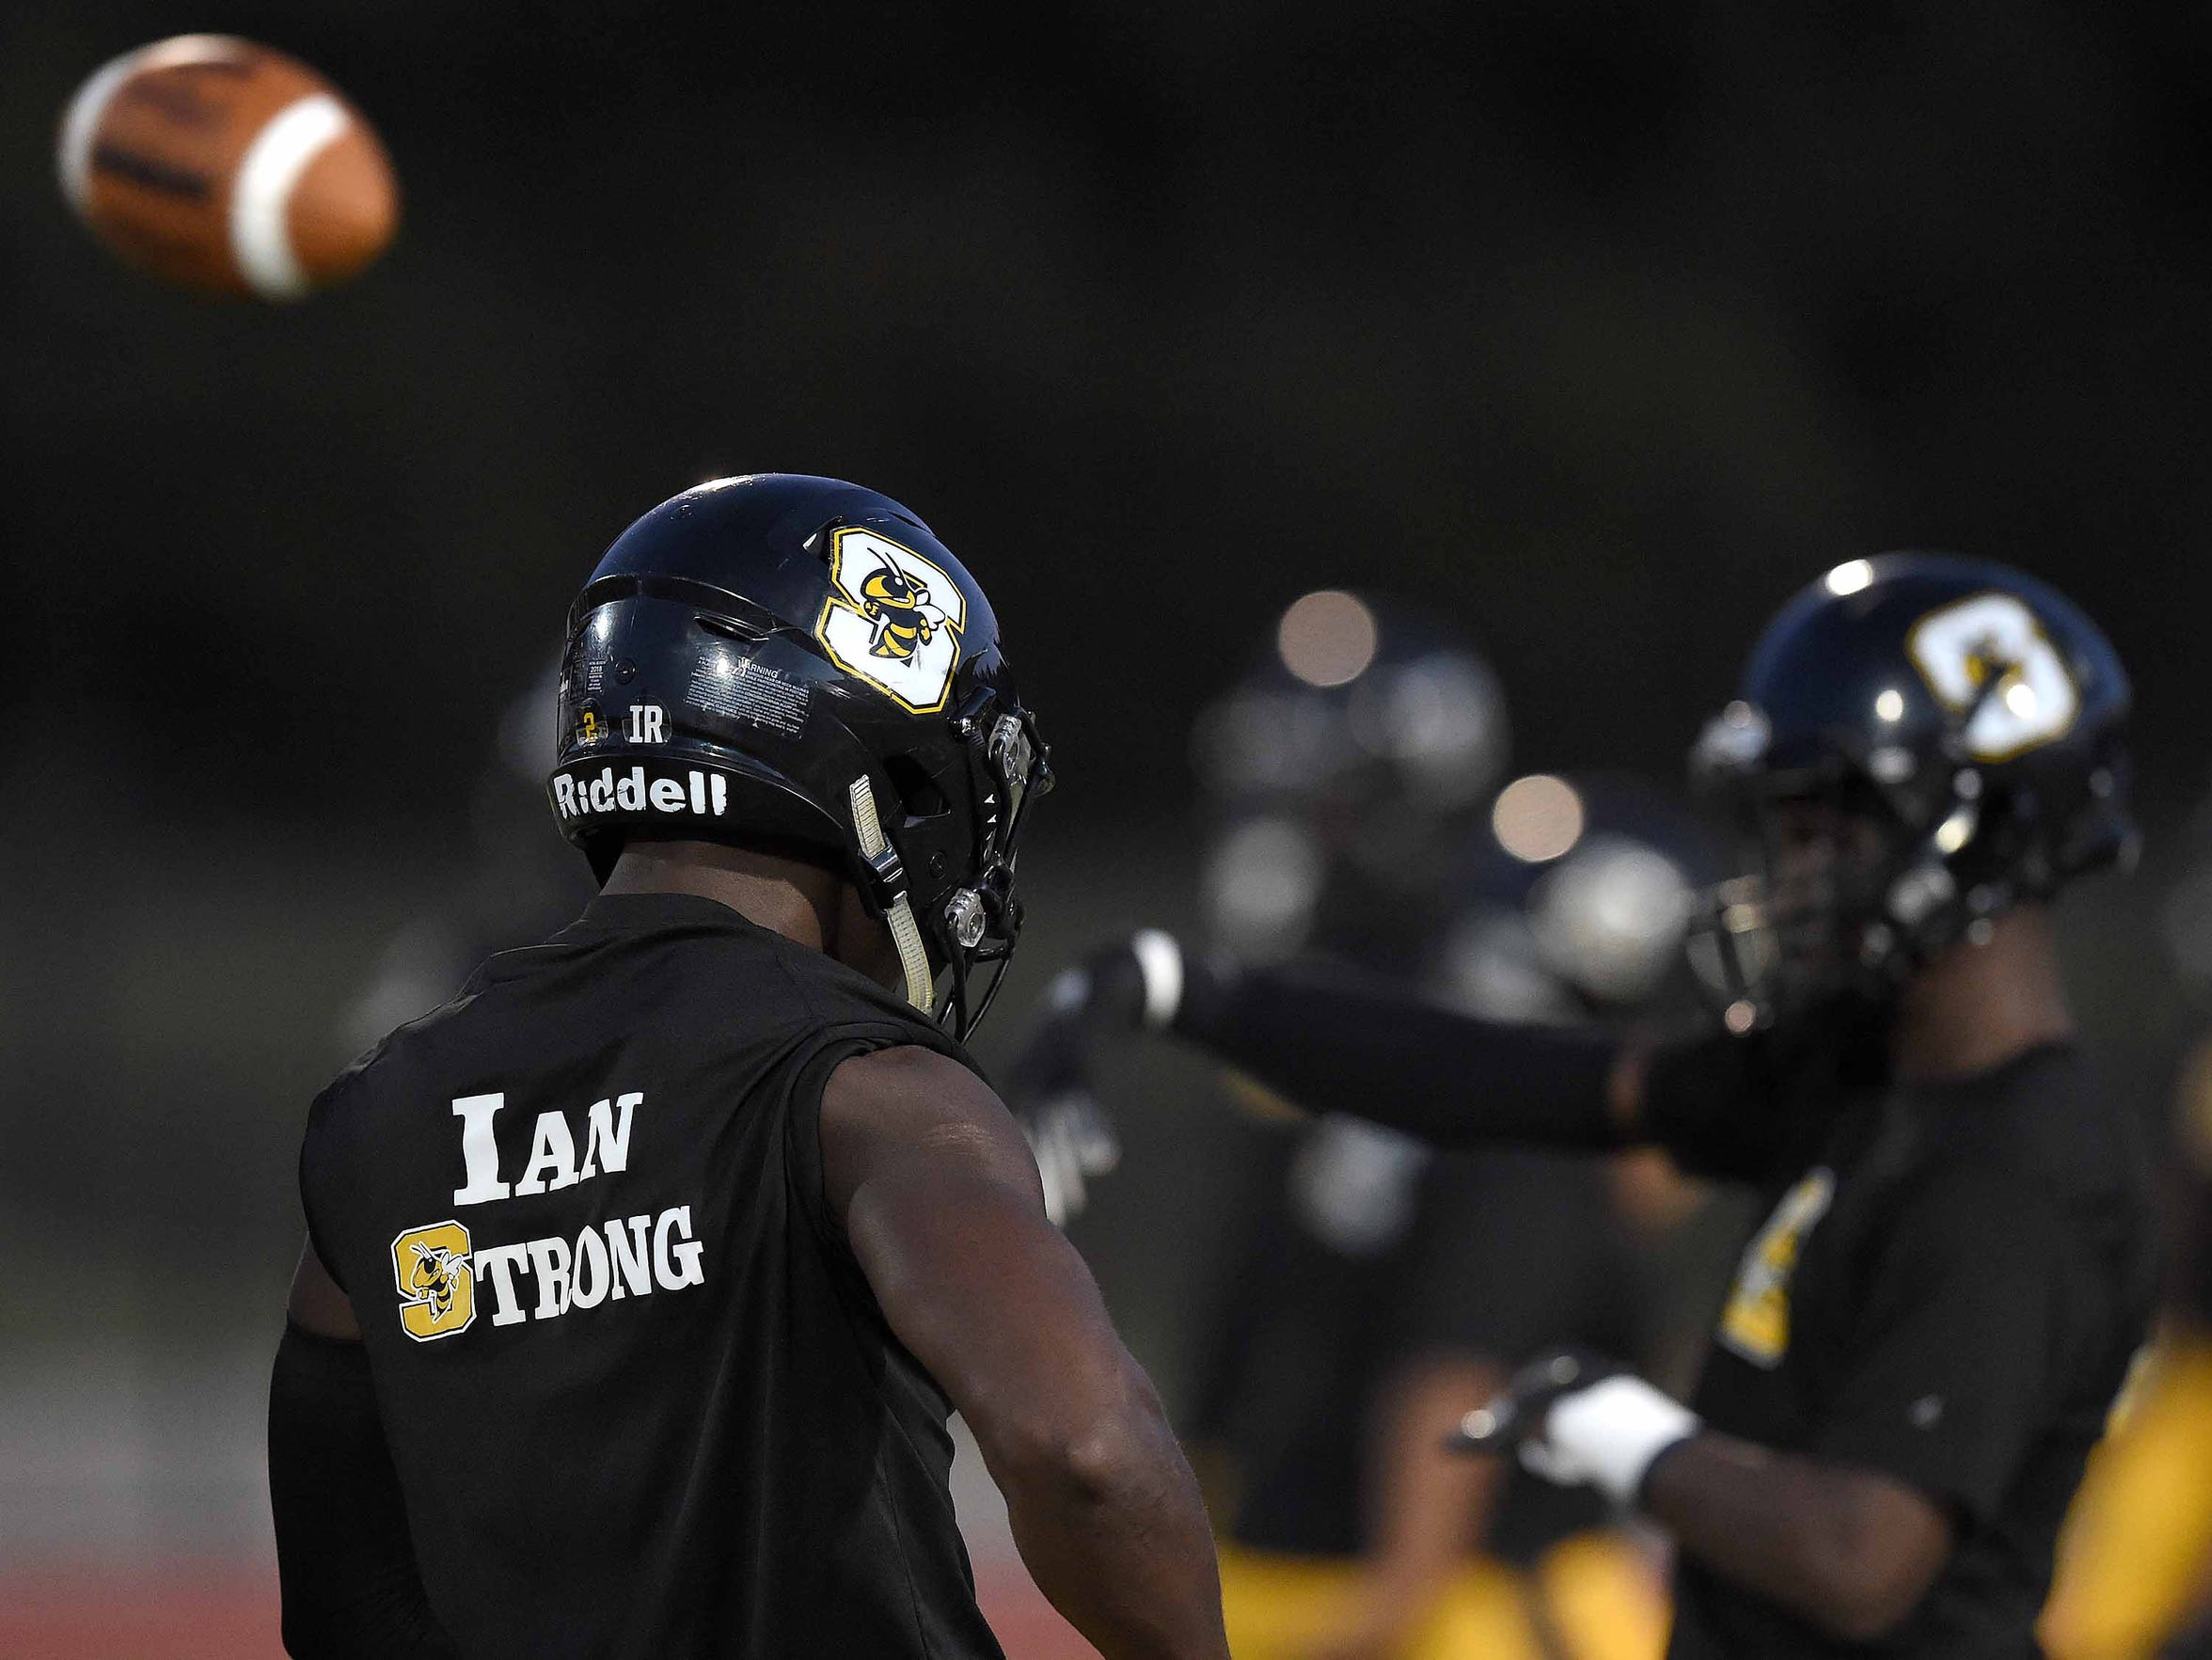 "The Starkville Yellow Jackets wore ""Ian Strong"" shirts for their warmup honoring Ian Reed, 24, a videographer who documented the school. Reed died in a Labor Day weekend car accident. Starkville played the Clinton Arrows in the final game of the regular season on Friday, November 2, 2018, at Clinton High School in Clinton, Miss."